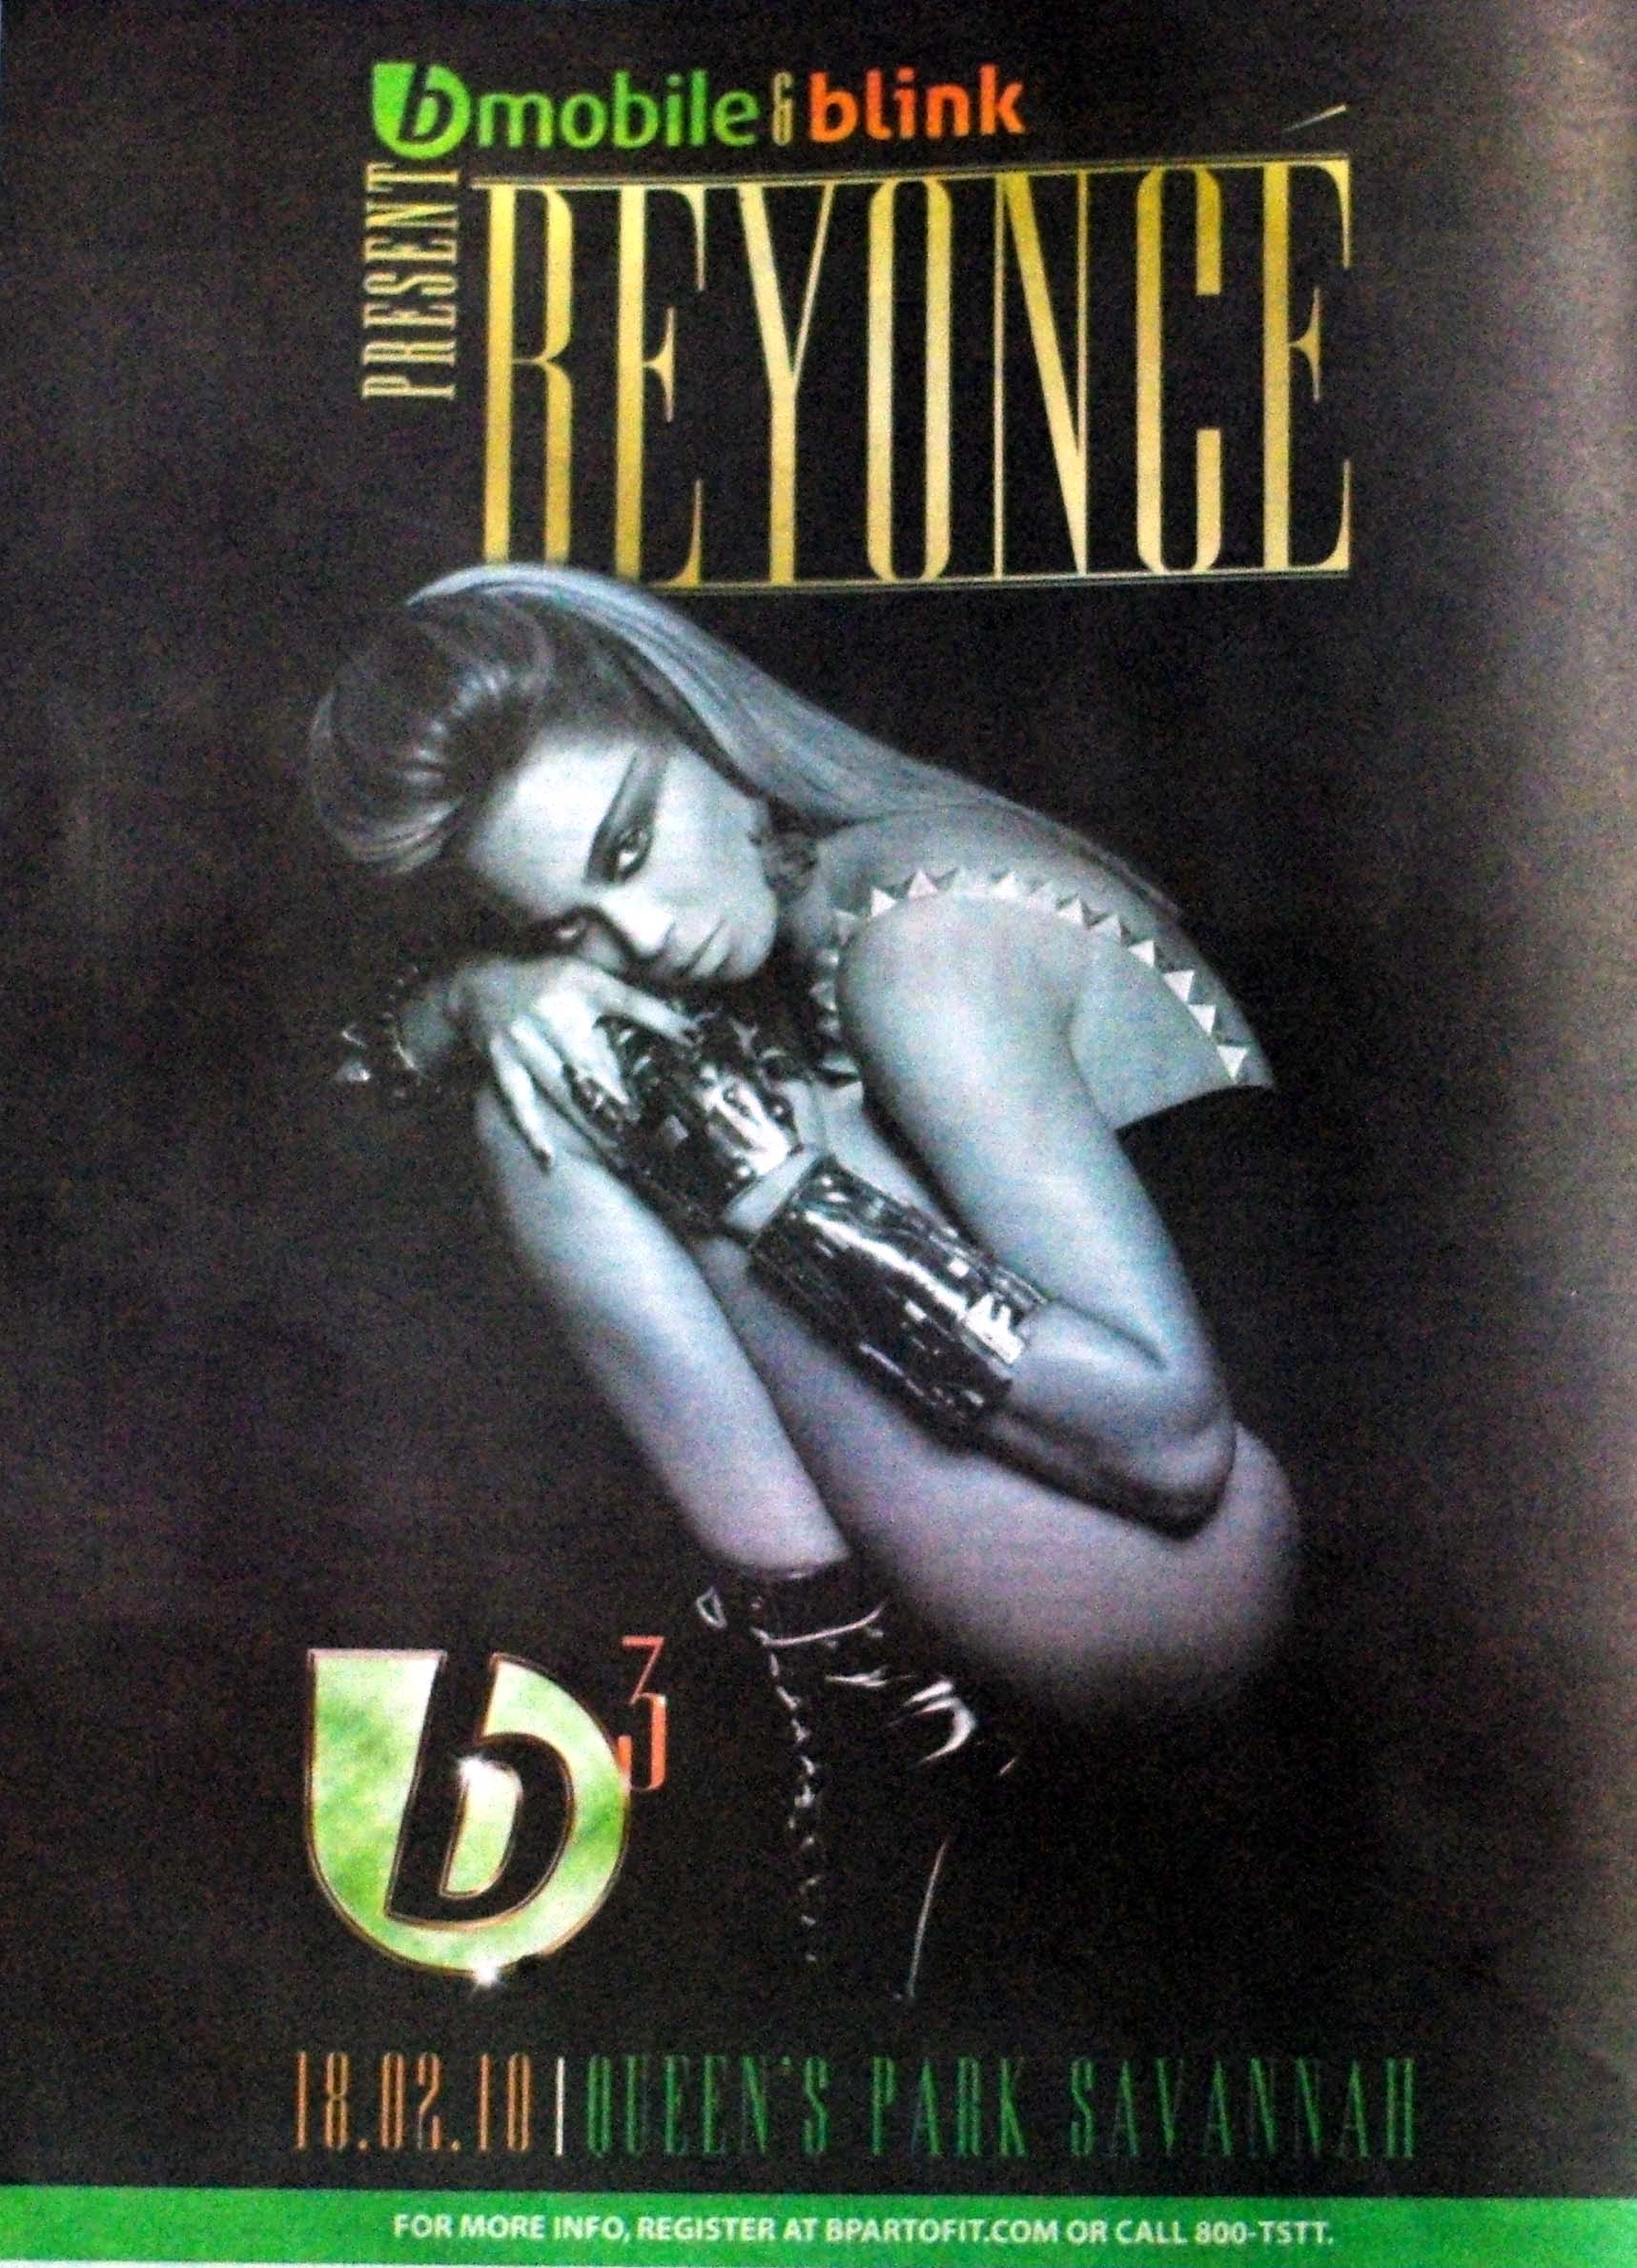 beyonce trinidad and tobago bmobile ad Heels Nylon: Ronni hot leggy mature in sheer nylons